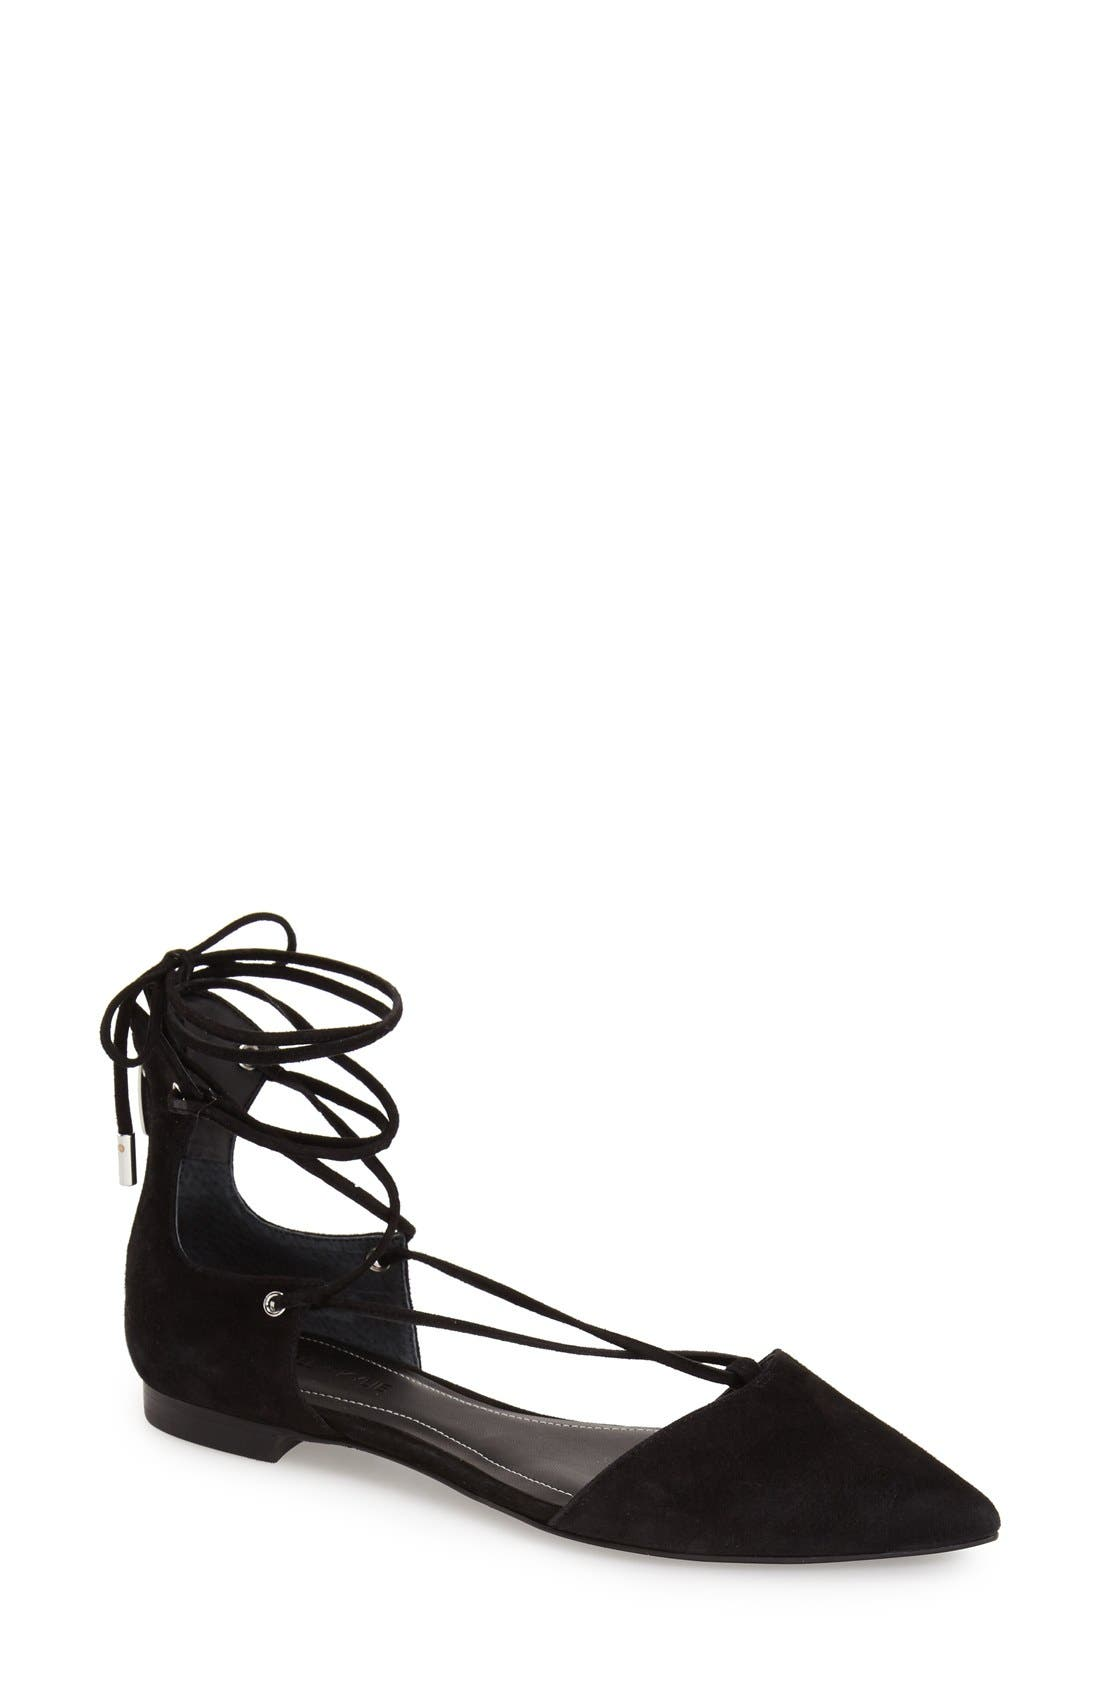 Alternate Image 1 Selected - KENDALL + KYLIE 'Sage' Pointy Toe Ghillie Flat (Women)